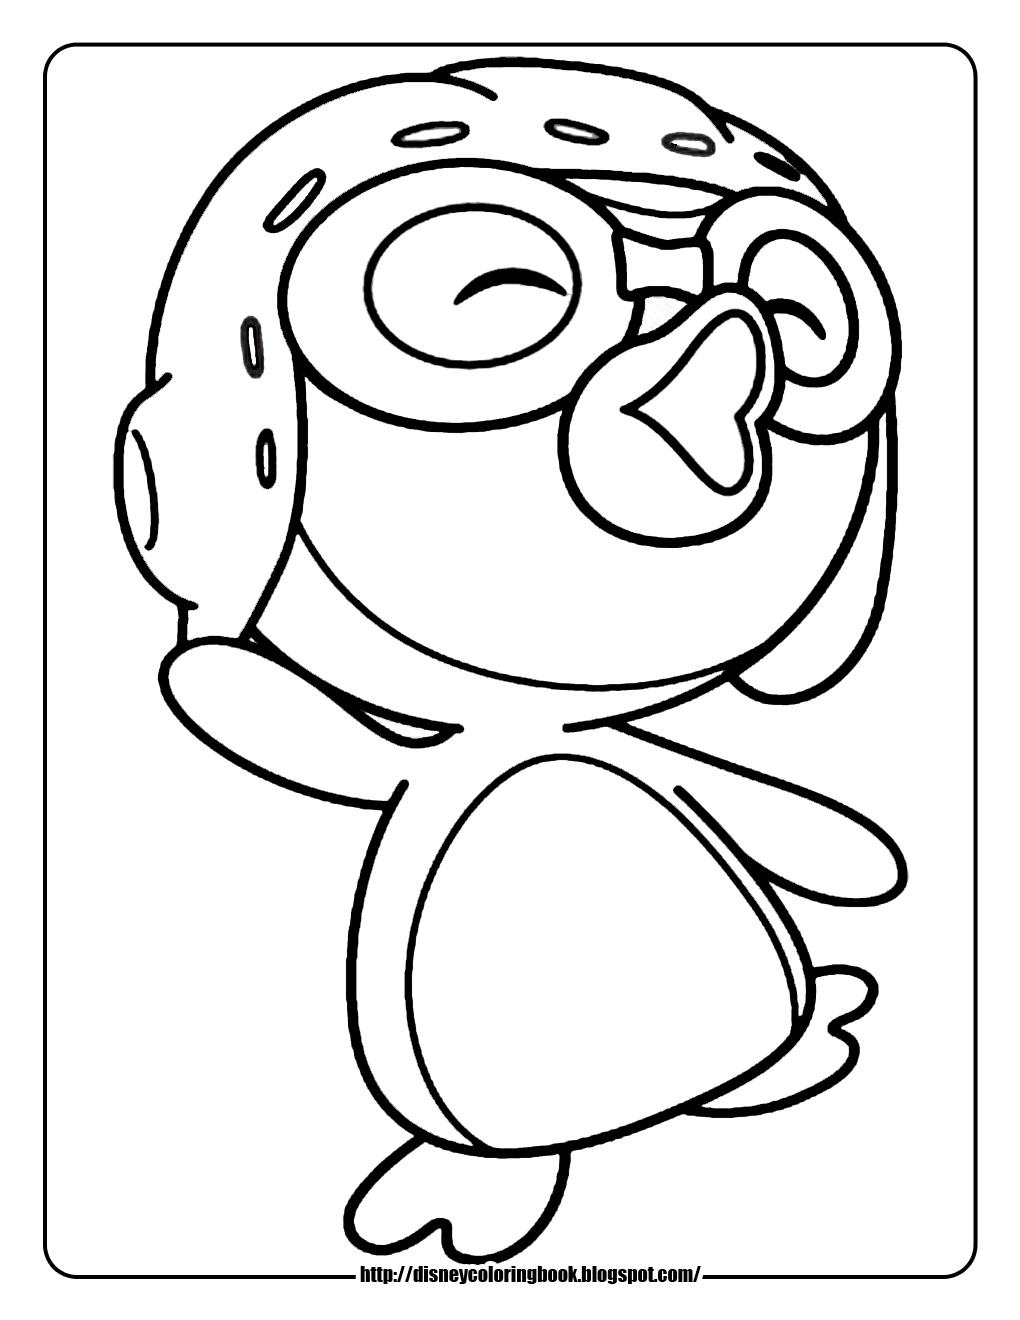 Pororo The Little Penguin Free Disney Coloring Sheets Pororo Coloring Pages